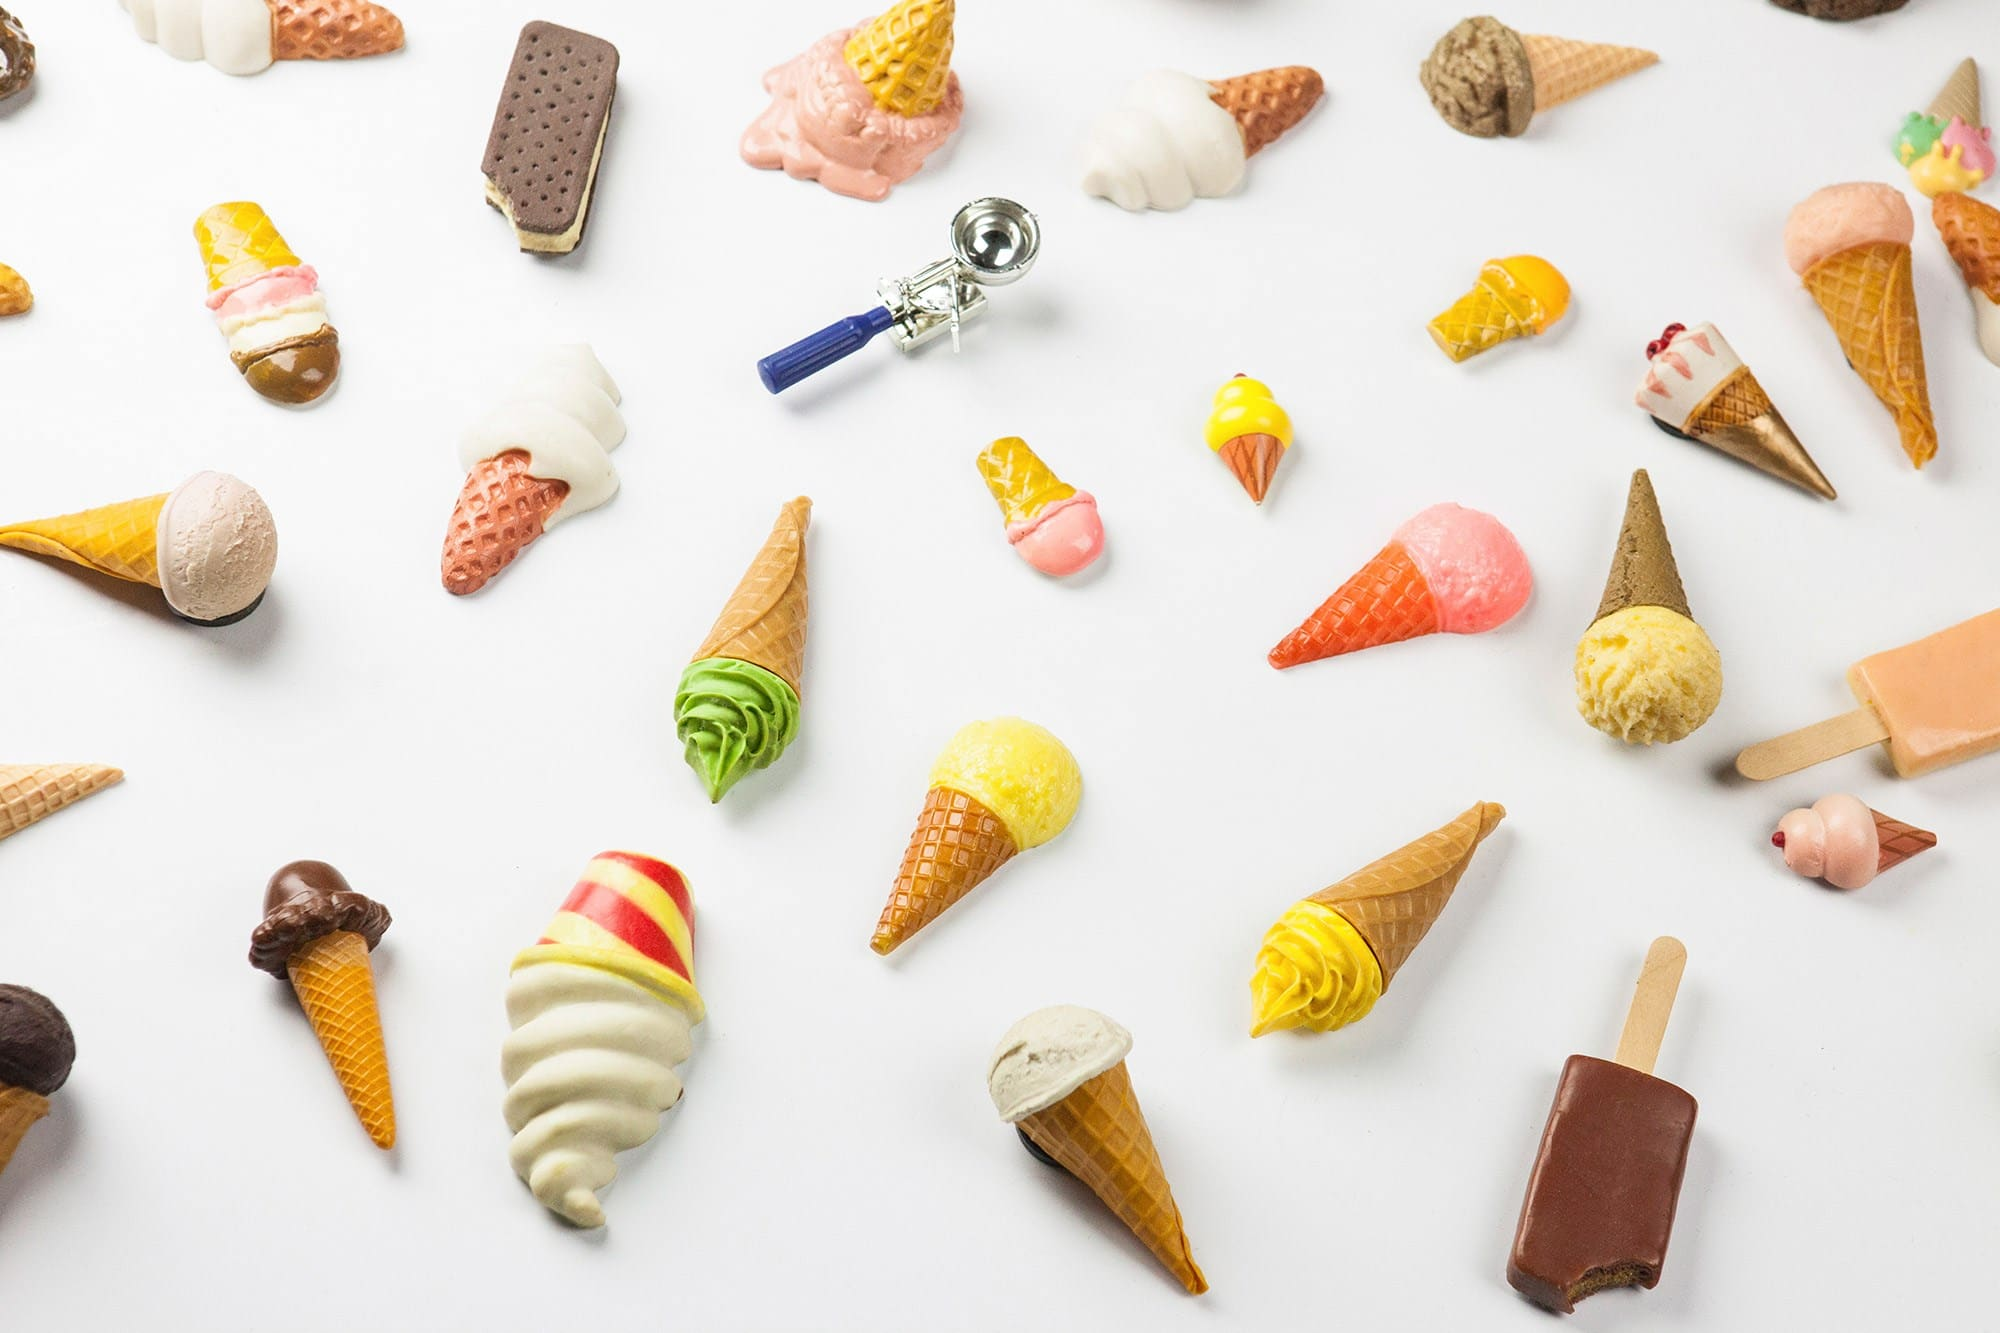 Scoop magnets | SCOOP: A Wonderful Ice Cream World